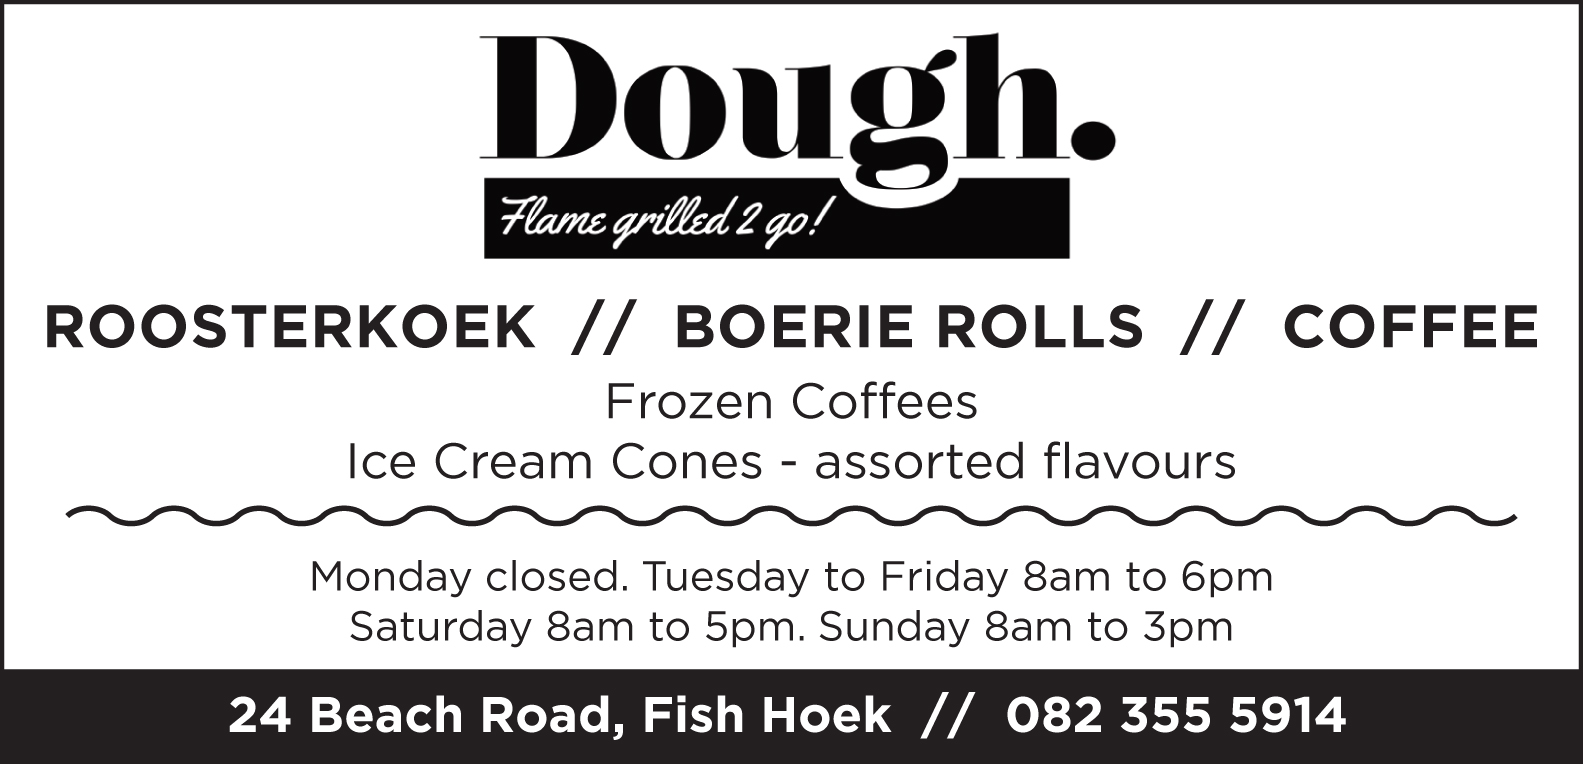 Dough – Flame grilled 2 go!